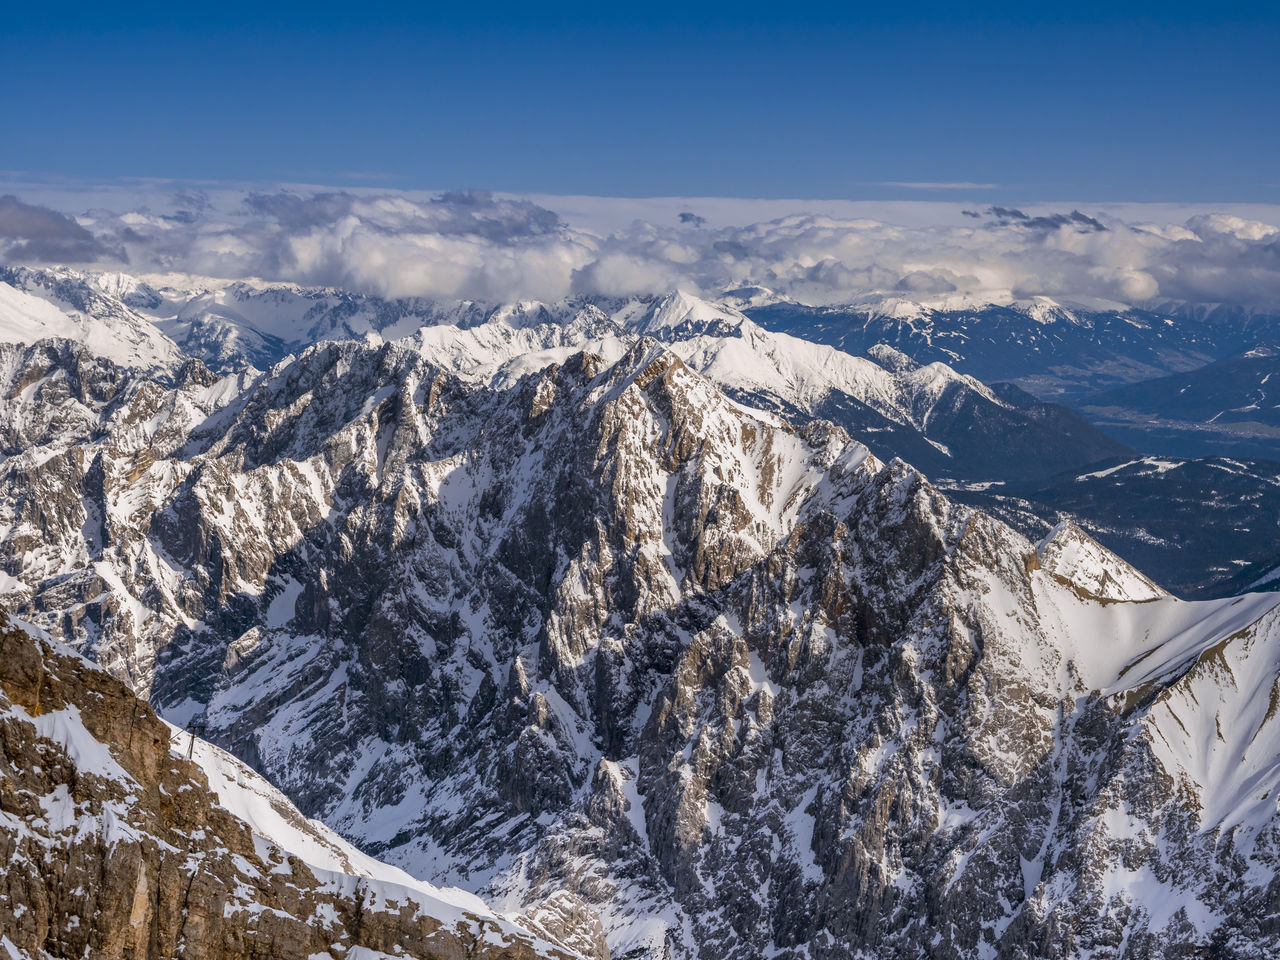 mountain, cold temperature, scenics - nature, snow, beauty in nature, winter, sky, environment, mountain range, tranquil scene, snowcapped mountain, landscape, nature, tranquility, day, no people, non-urban scene, idyllic, white color, outdoors, mountain peak, formation